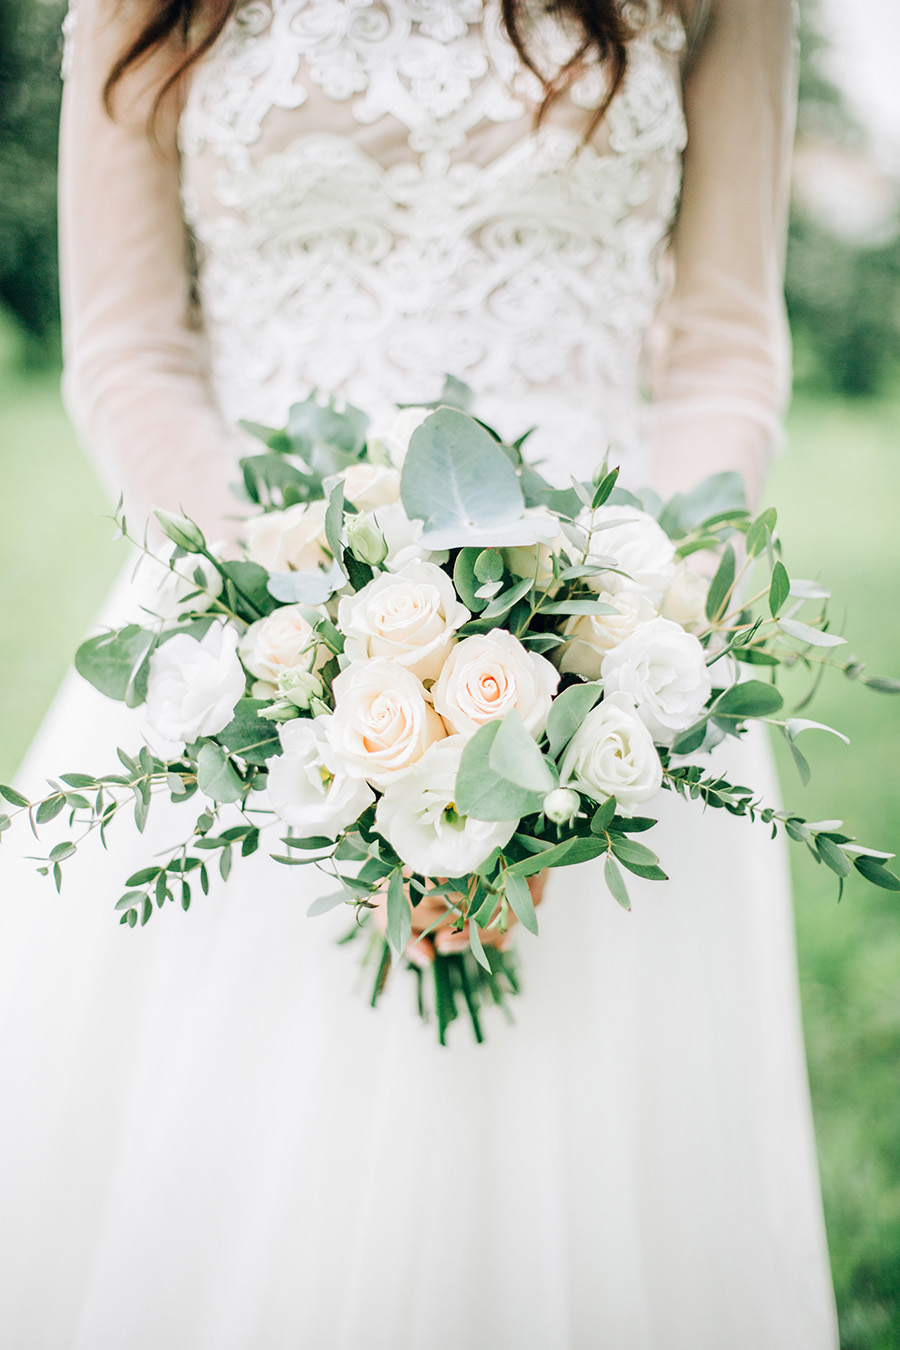 Summer Wedding Bouquet featuring white and blush roses